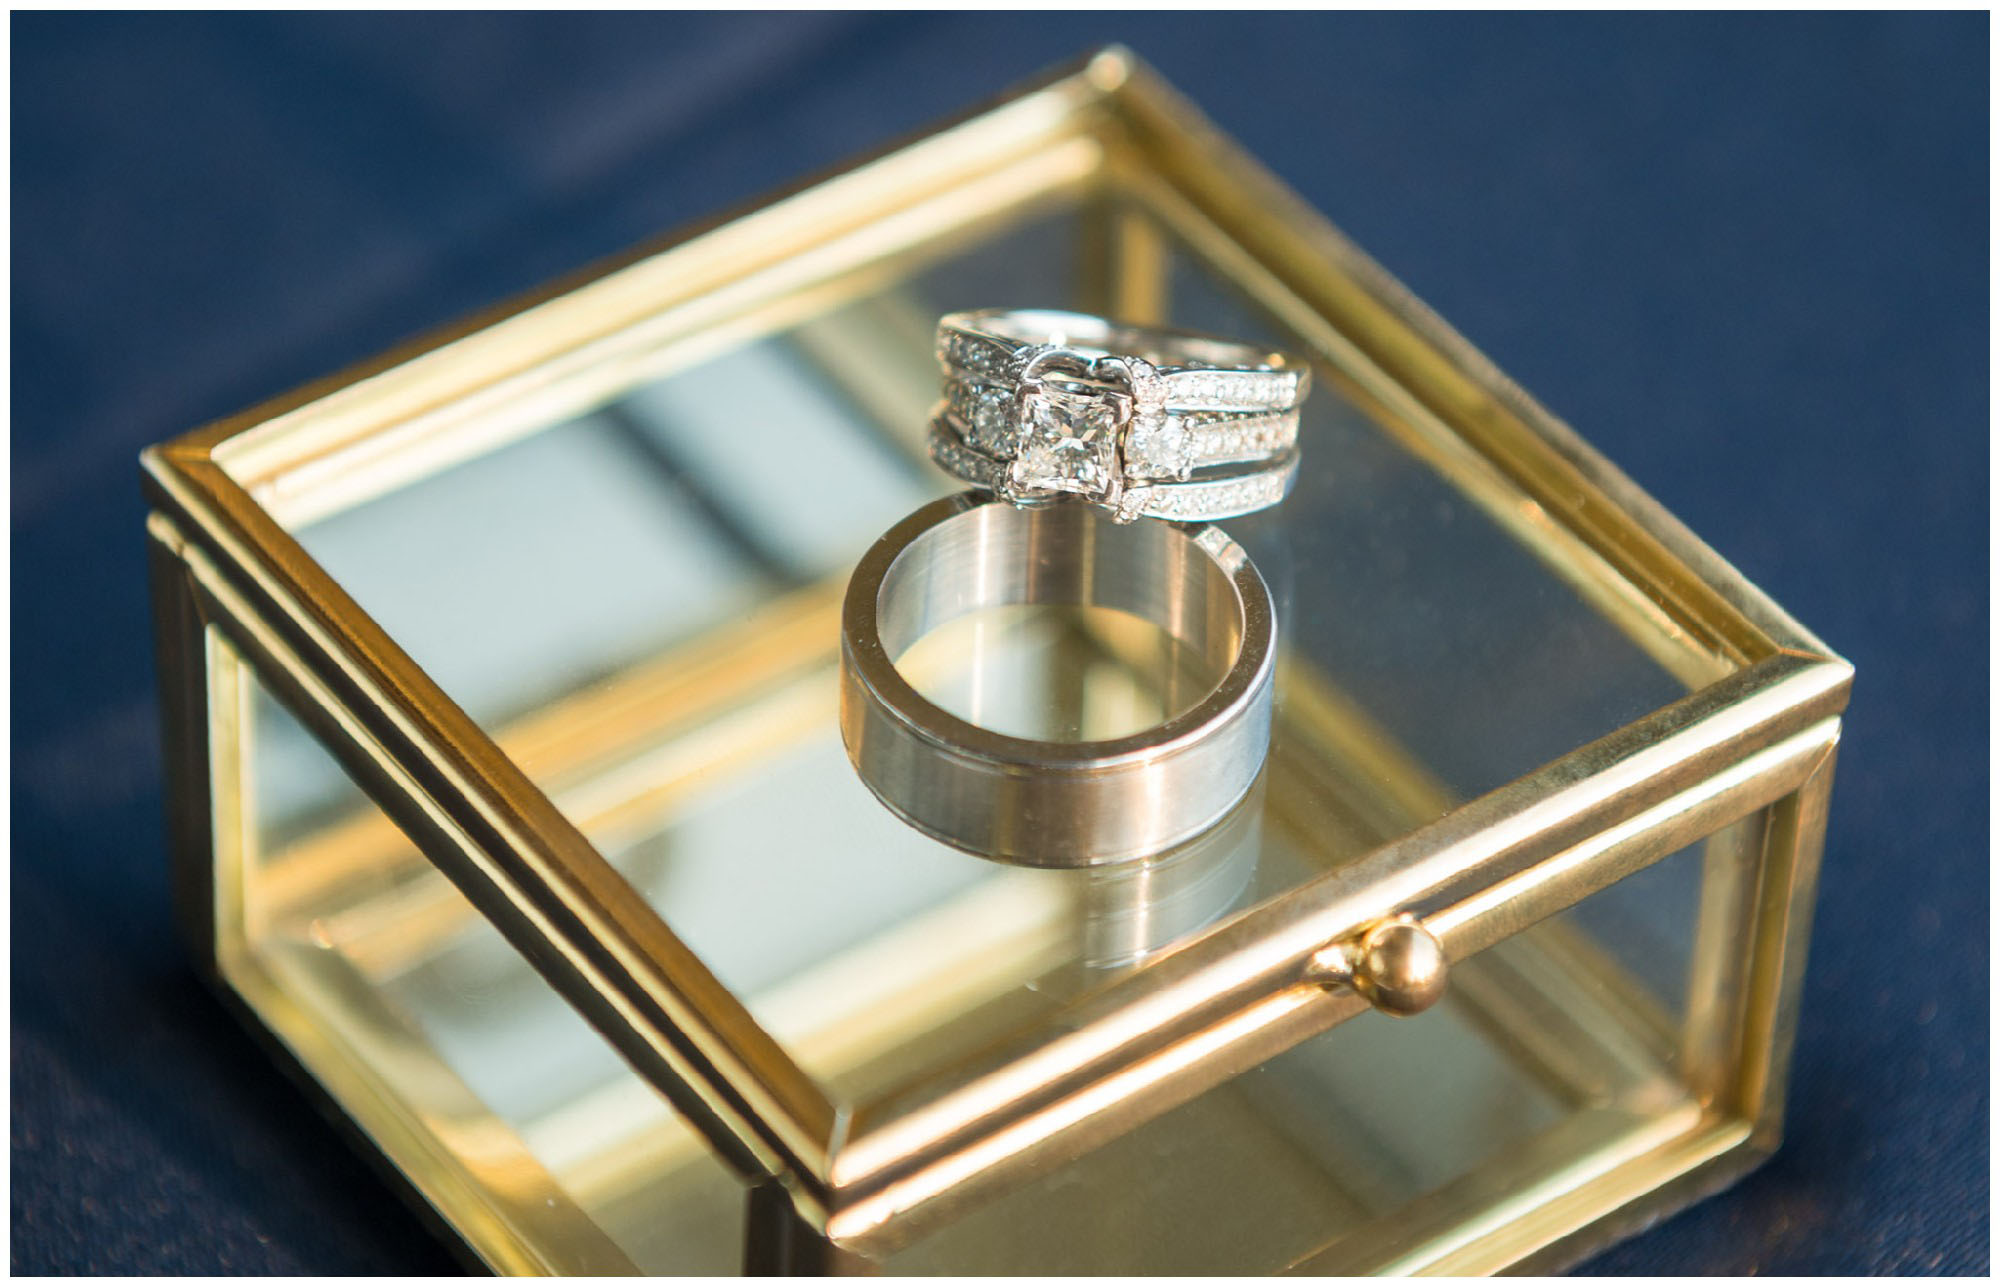 wedding rings on gold mirrored box